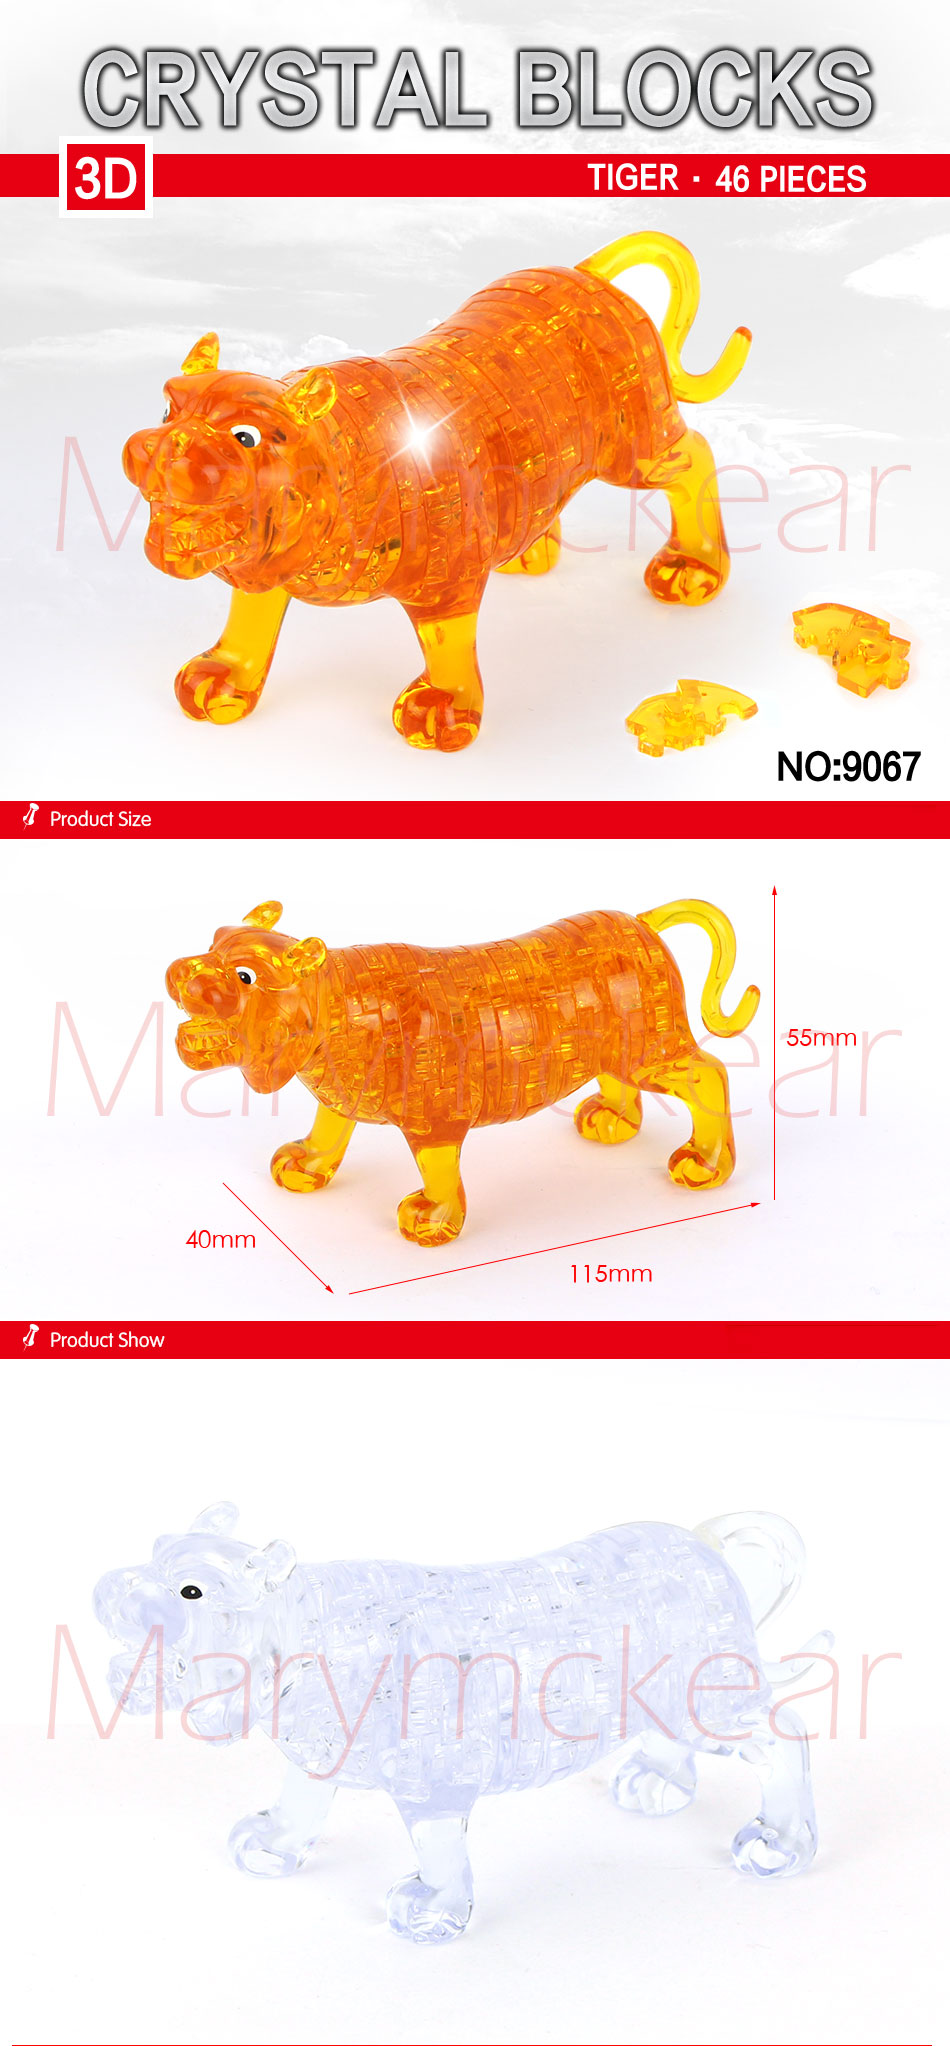 Toys, Hobbies Intellective Cute Cat Animal Model Figurine Model Ornament Toys Decoration Kids Gaming Toys Educational Toys